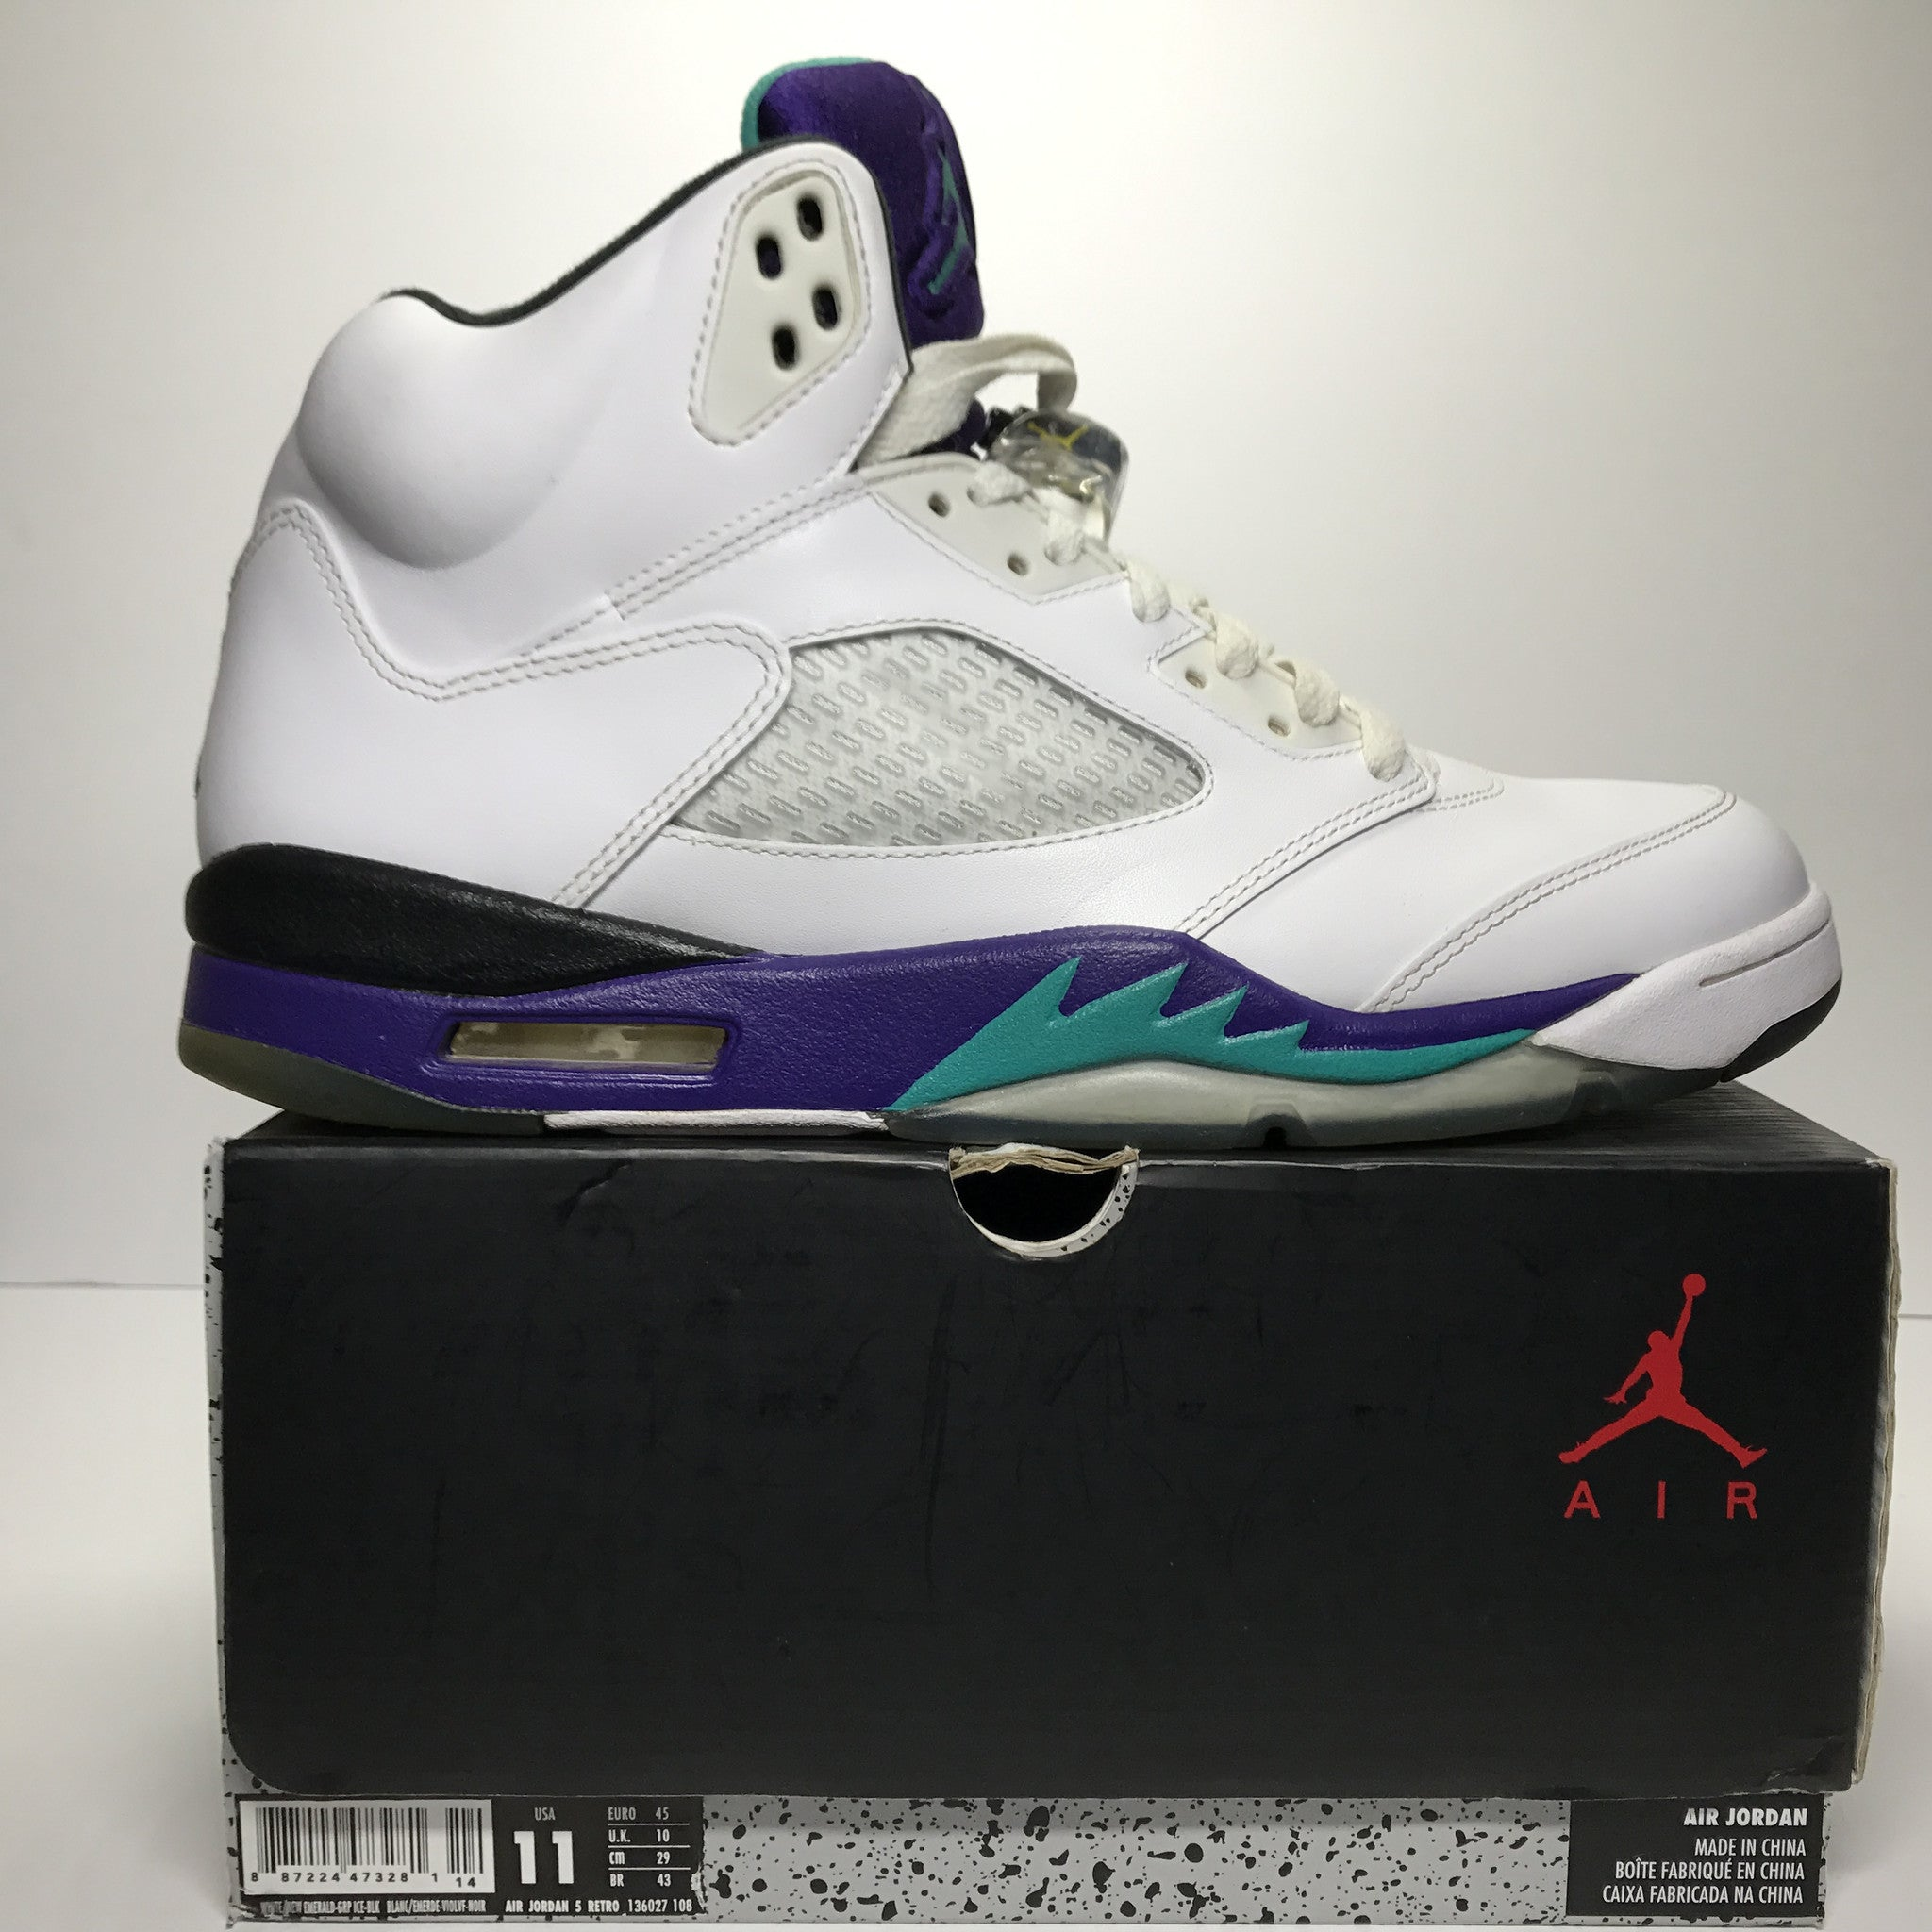 Nike Air Jordan 5 V Retro White Grape Size 11